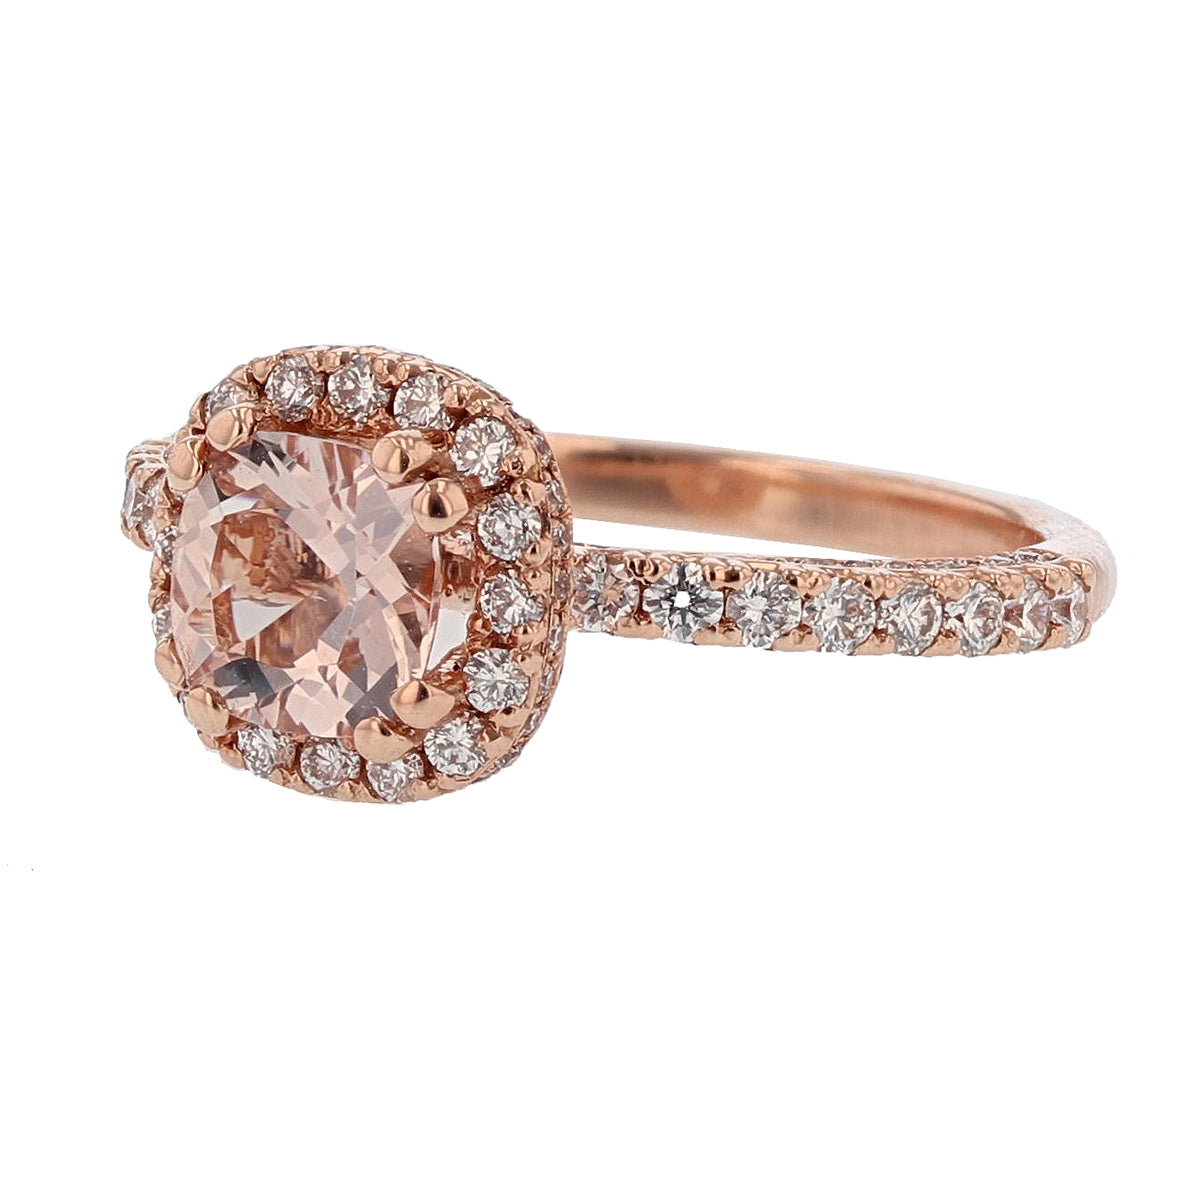 14K Rose Gold Cushion Morganite Engagement Ring - Nazarelle